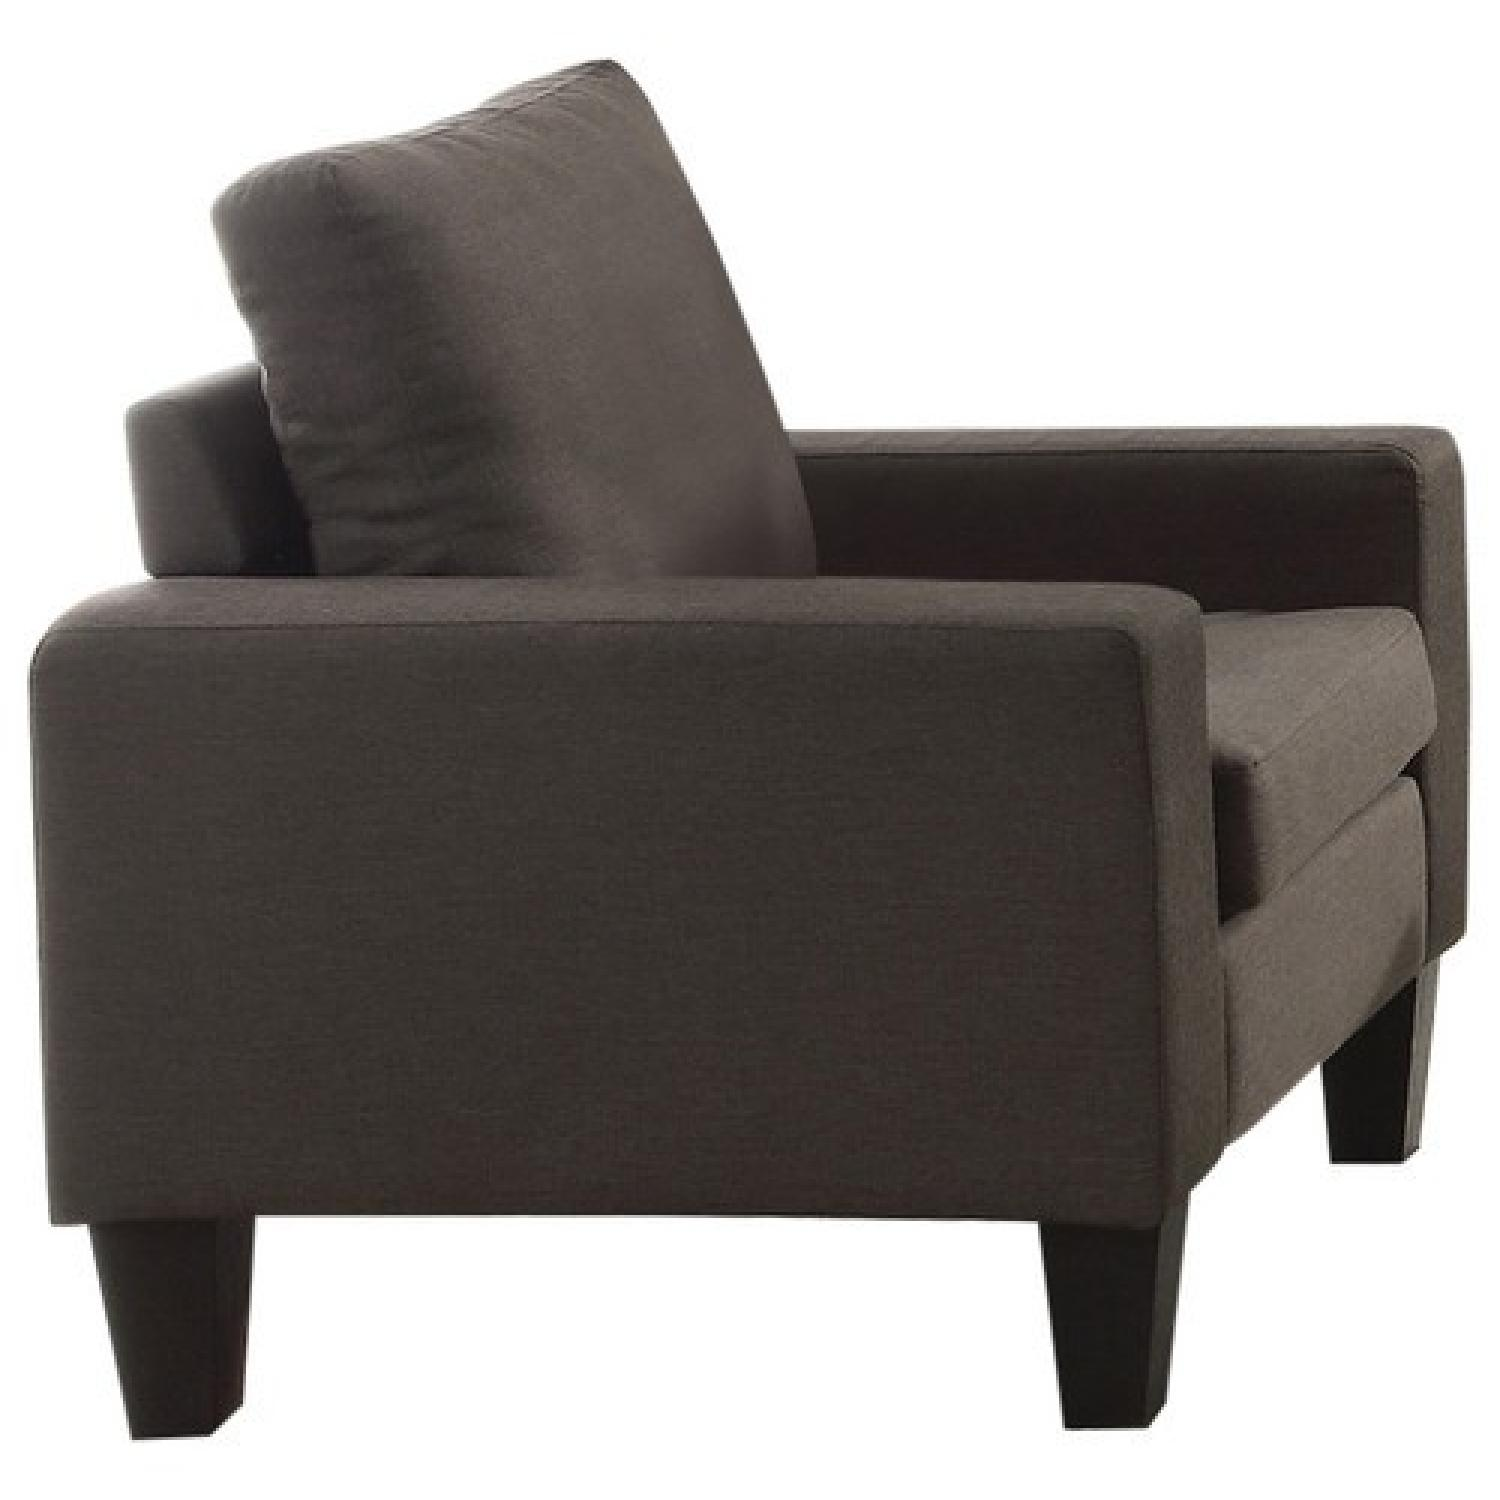 Arm Chair in Grey Linen Fabric - image-1